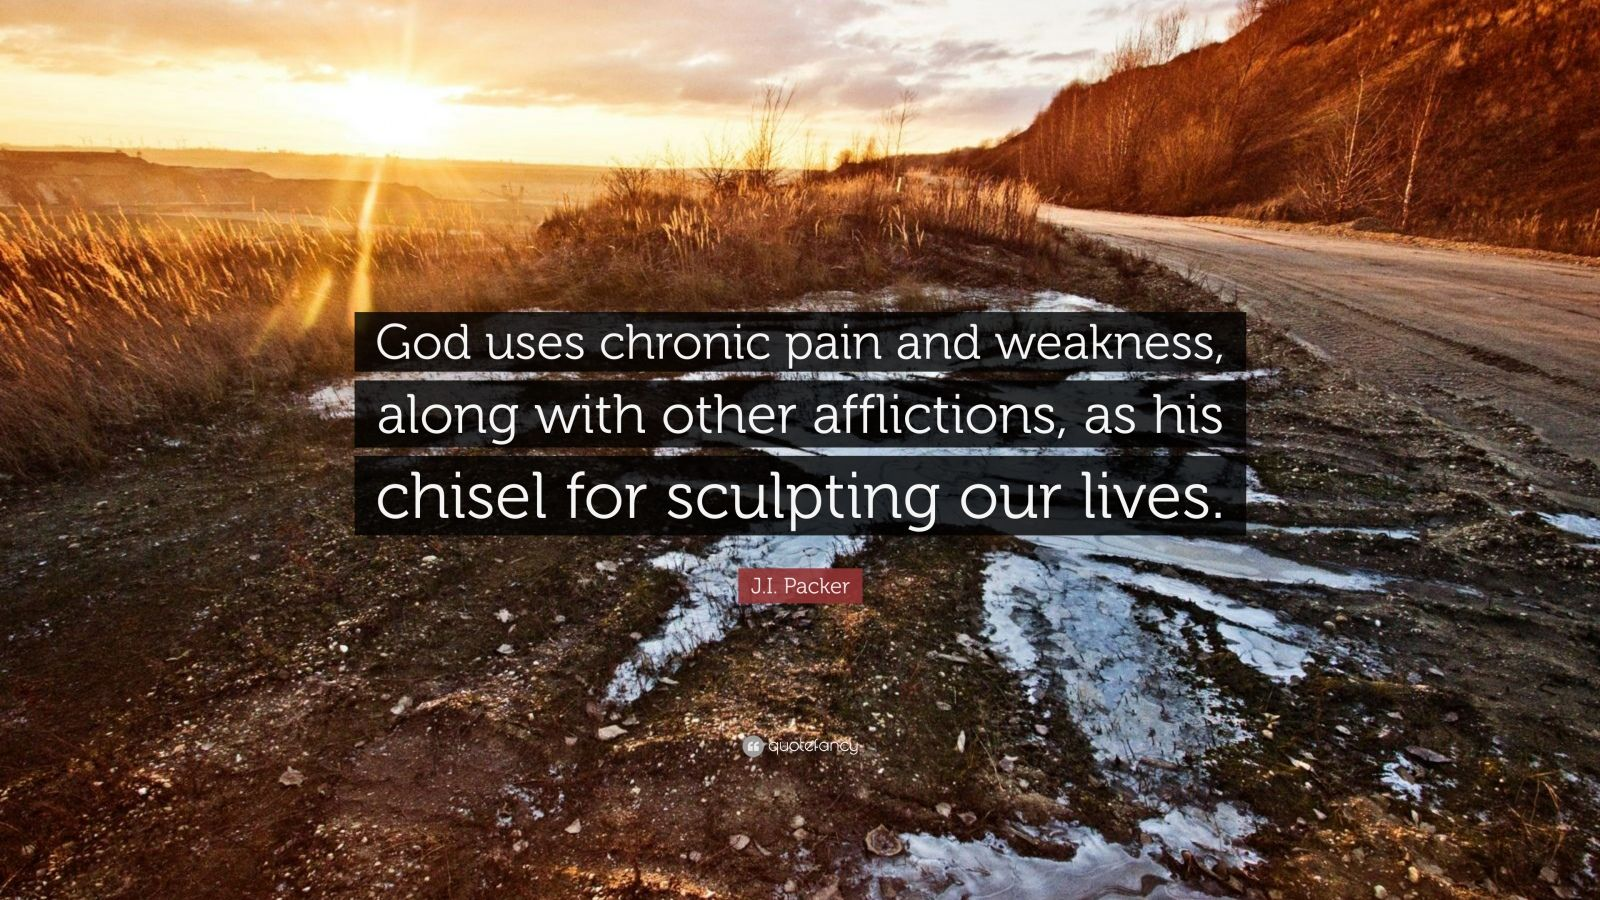 """J.I. Packer Quote: """"God uses chronic pain and weakness, along with other afflictions, as his chisel for sculpting our lives."""""""